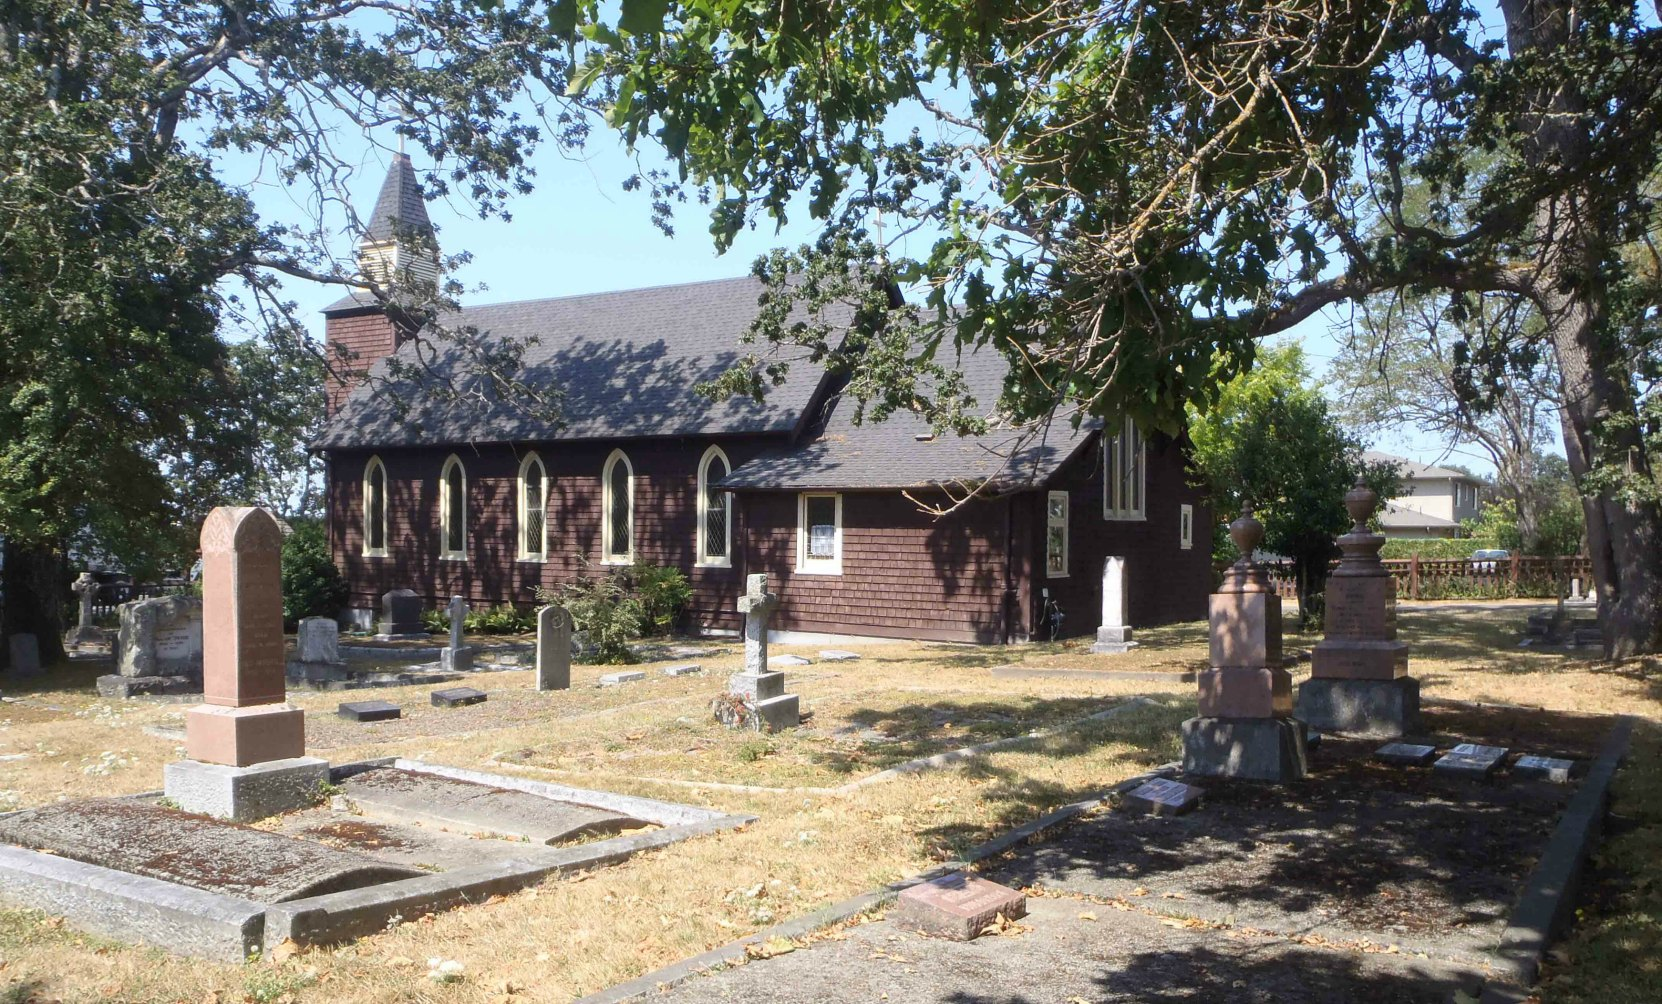 The cemetery of Holy Trinity Anglican Church, Sidney, B.C.